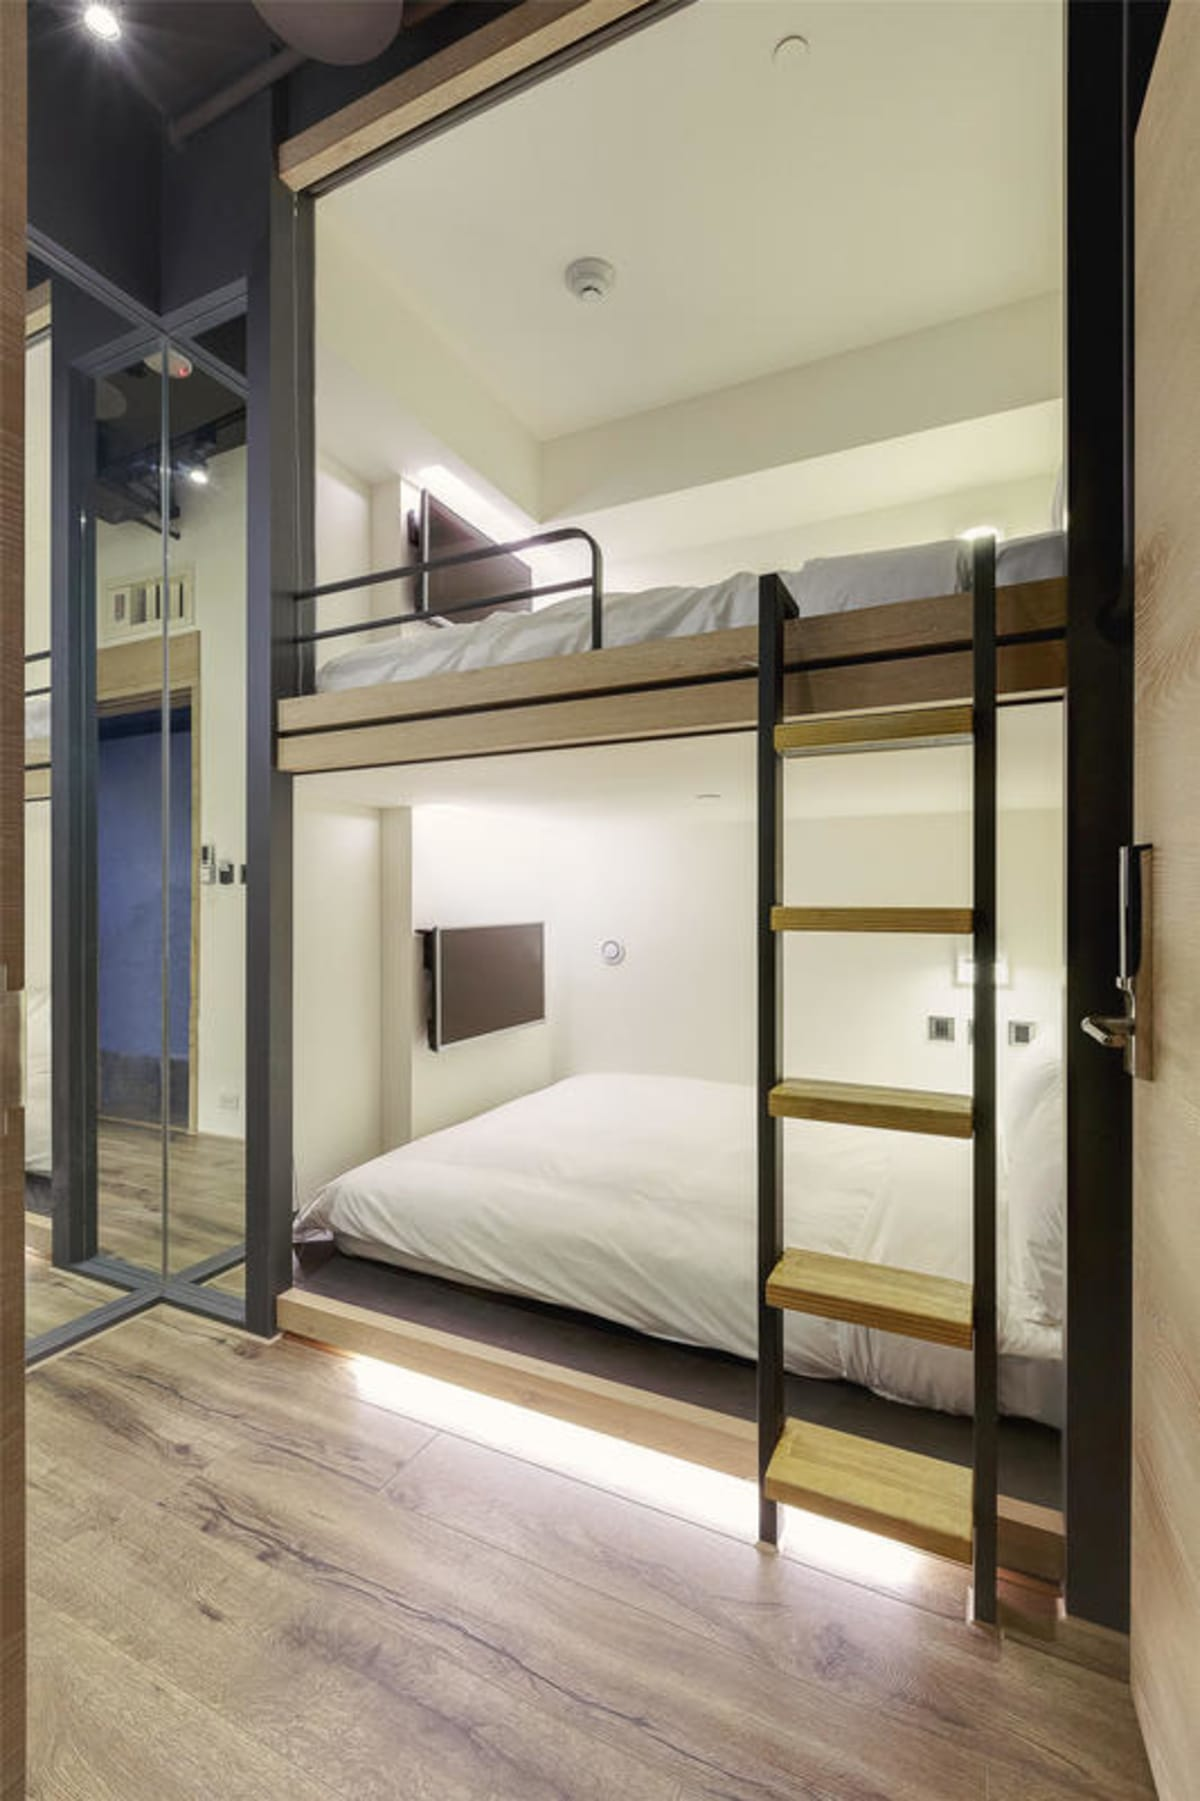 Taiwan Youth Hostel & Capsule Hotel, Taipei, Taiwan China hostel